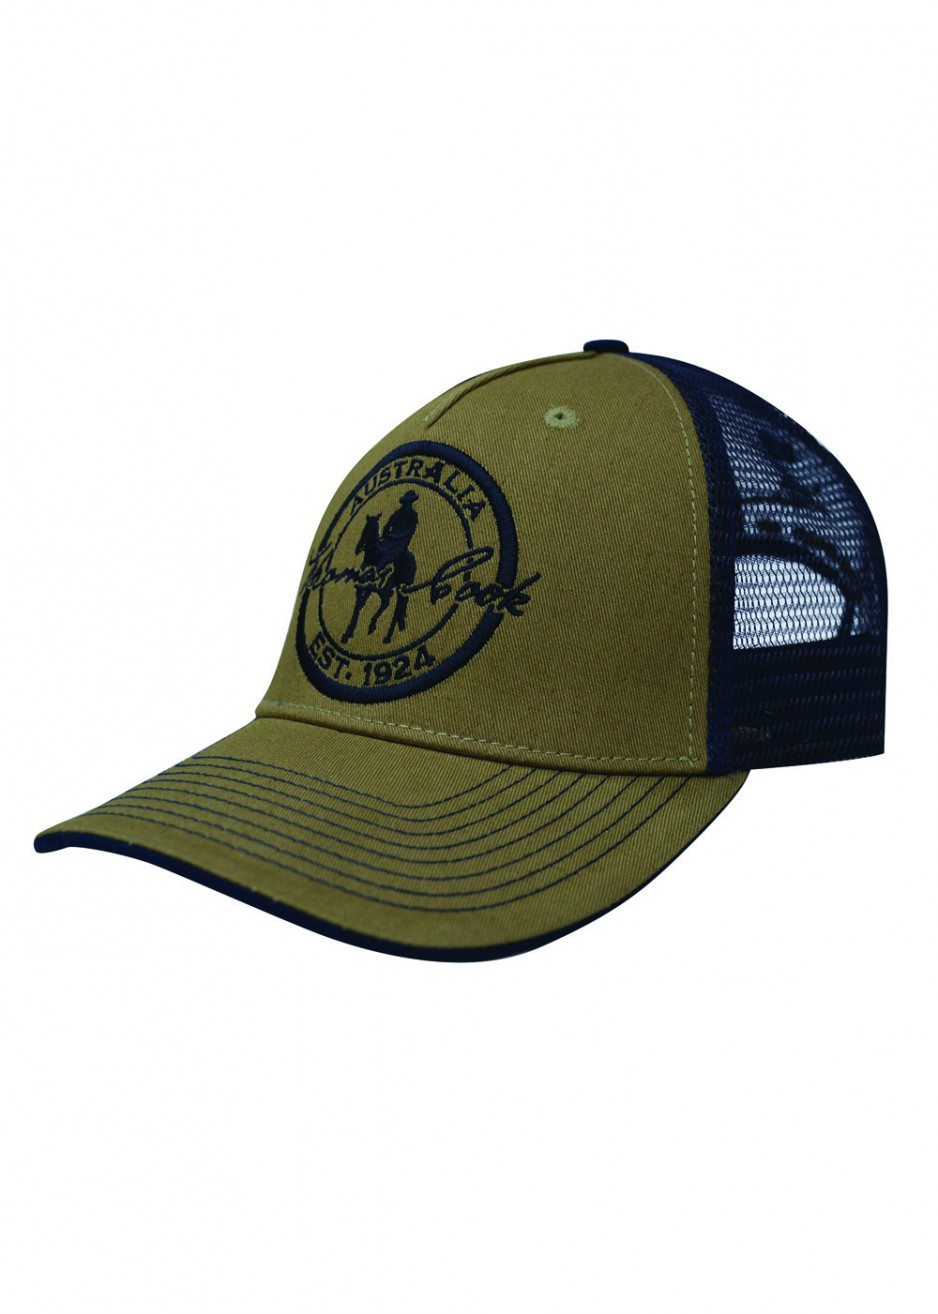 MENS THOMAS TRUCKER CAP